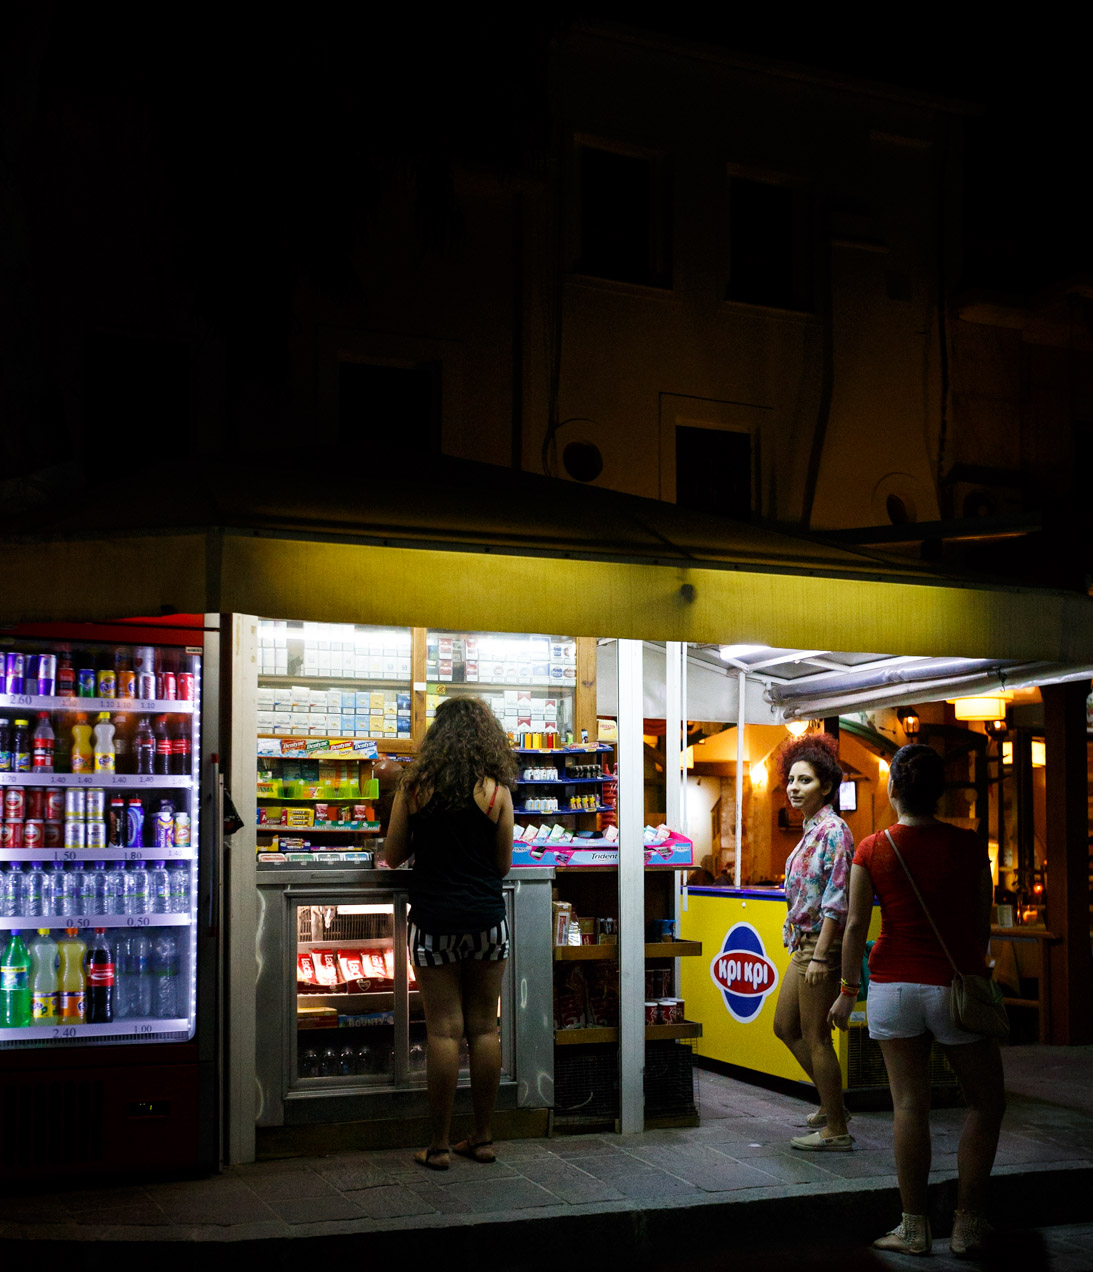 Night-time Kiosk Stop